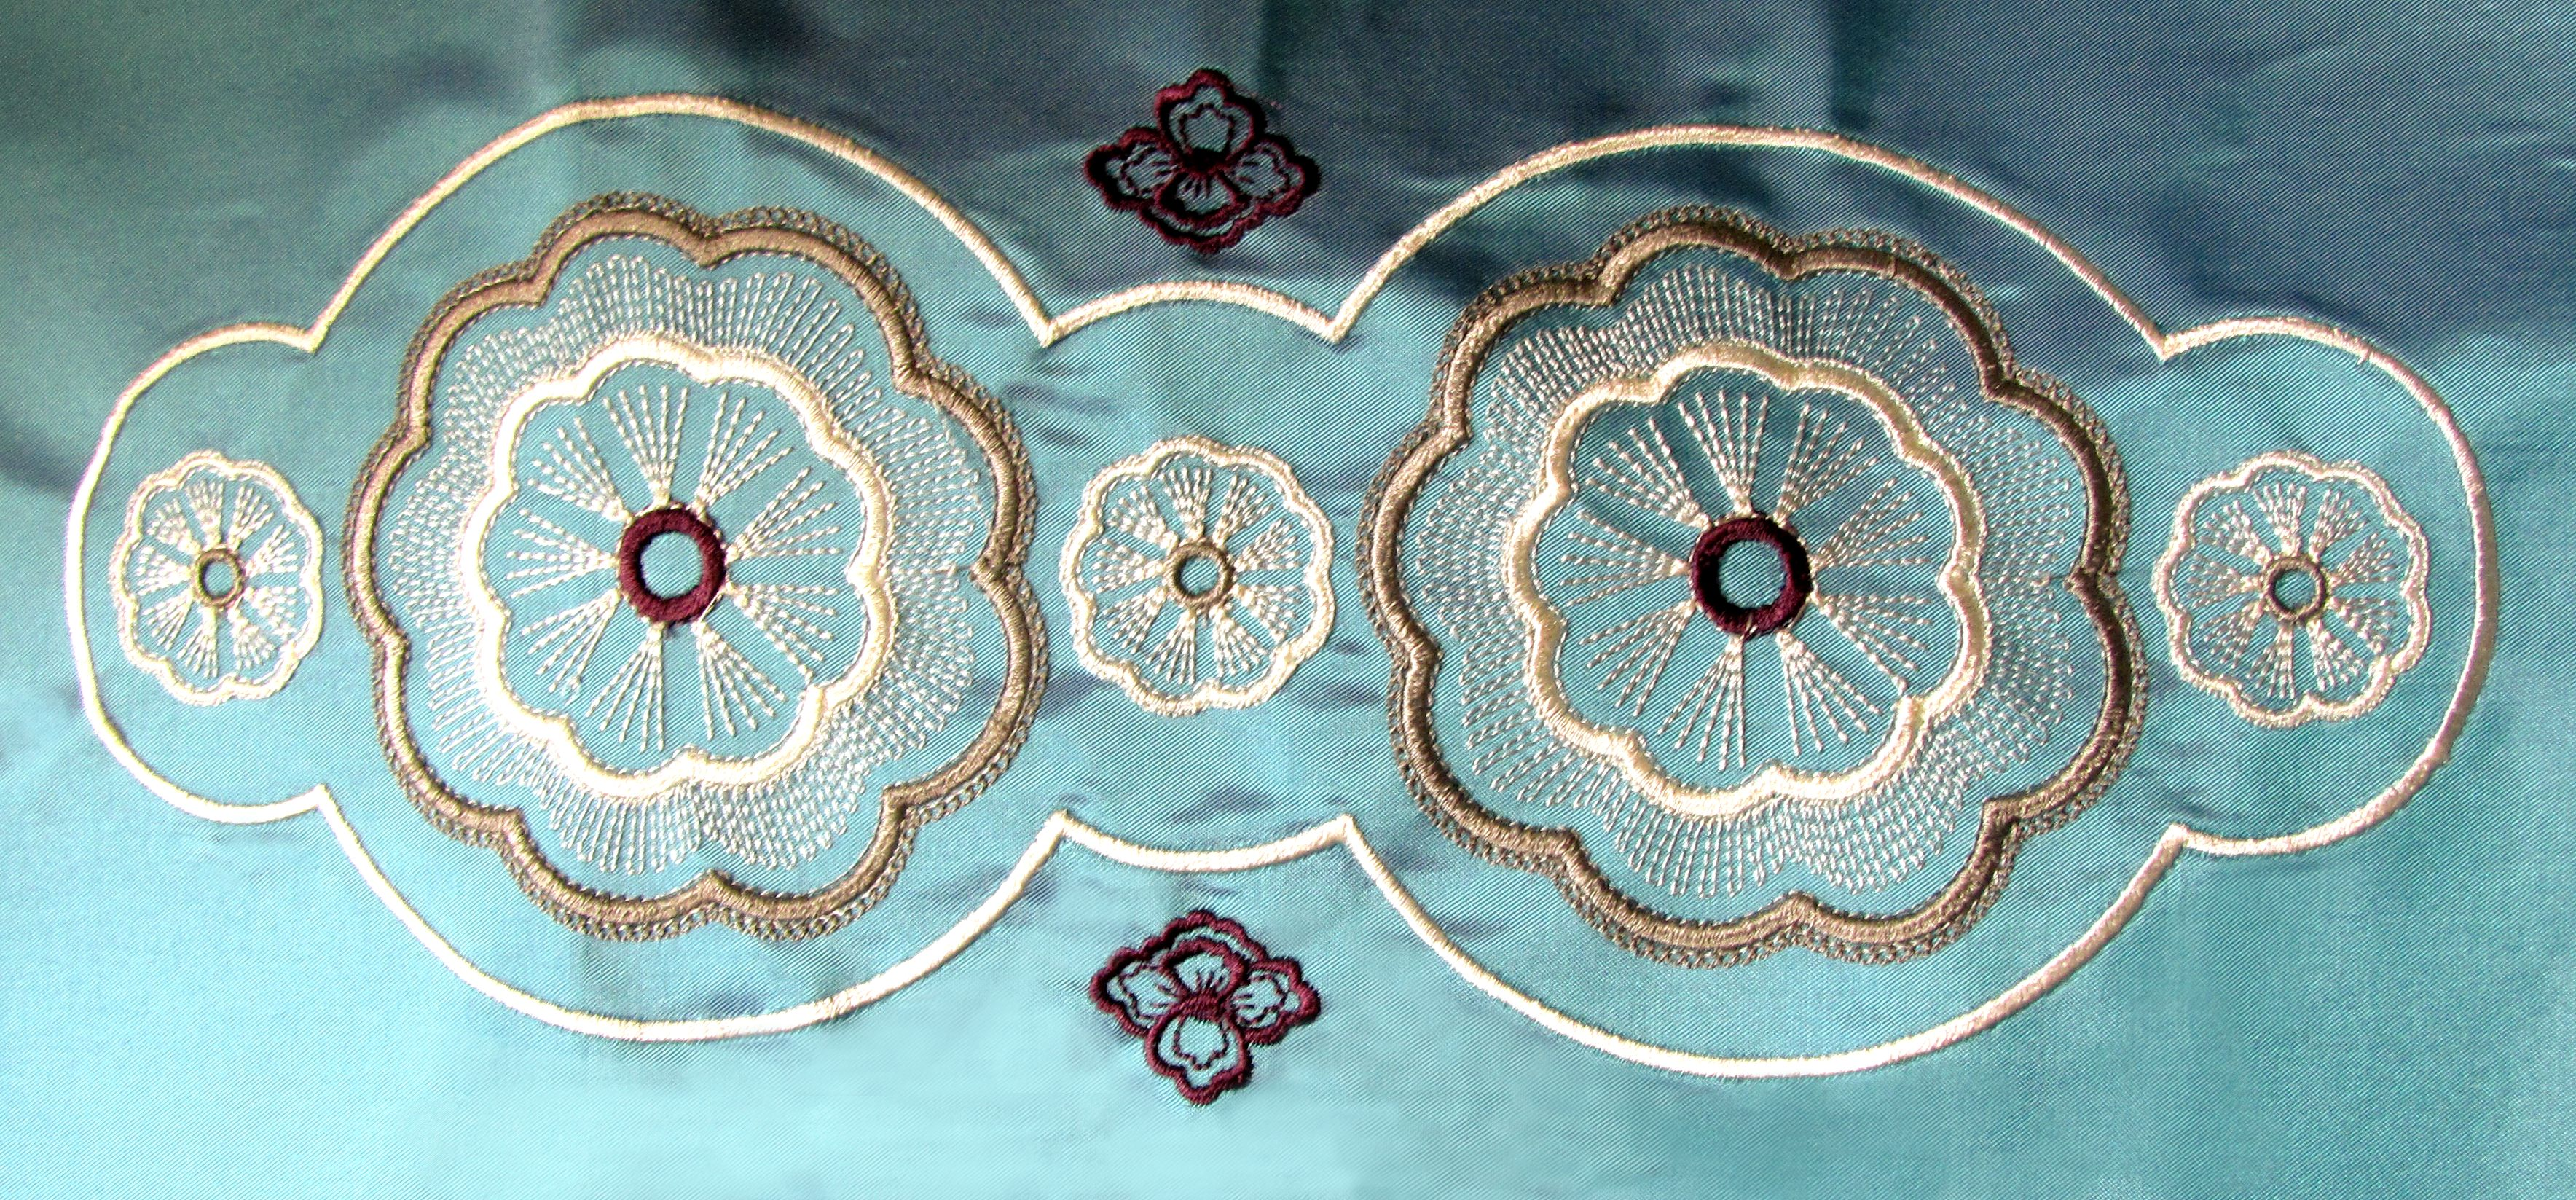 quilt-quilt-border-embroidery